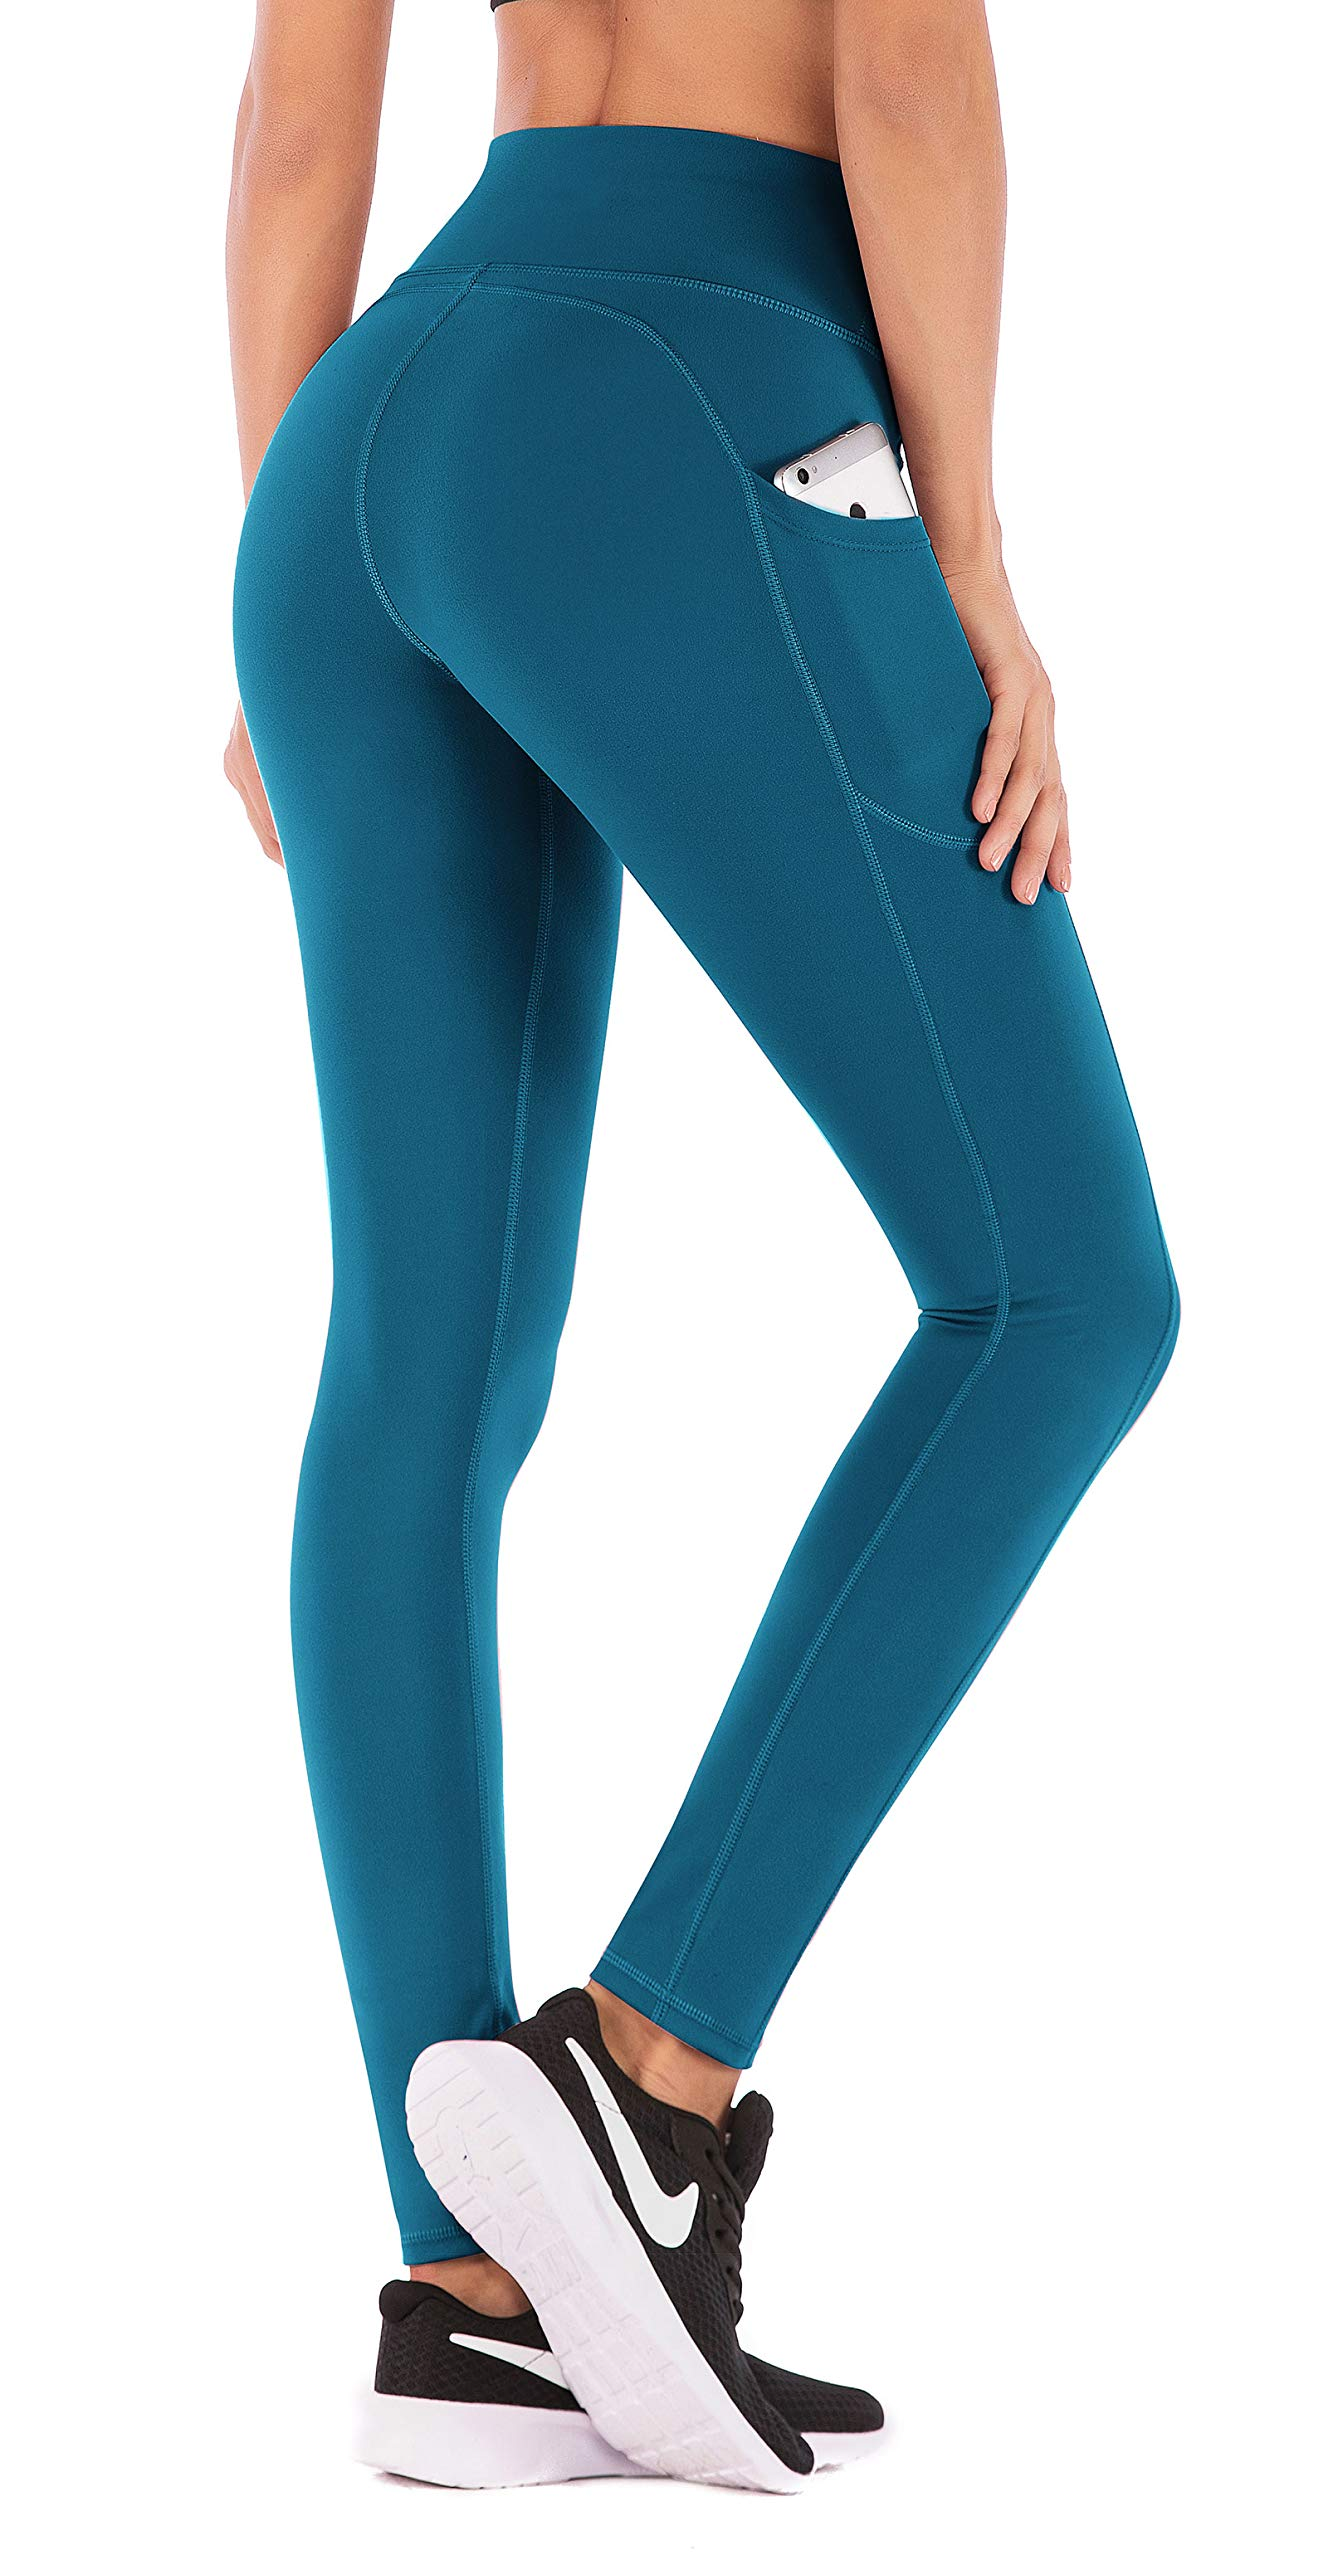 IUGA High Waist Yoga Pants with Pockets, Tummy Control, Workout Pants for Women 4 Way Stretch Yoga Leggings with Pockets (Peacock Blue 840, Medium) by IUGA